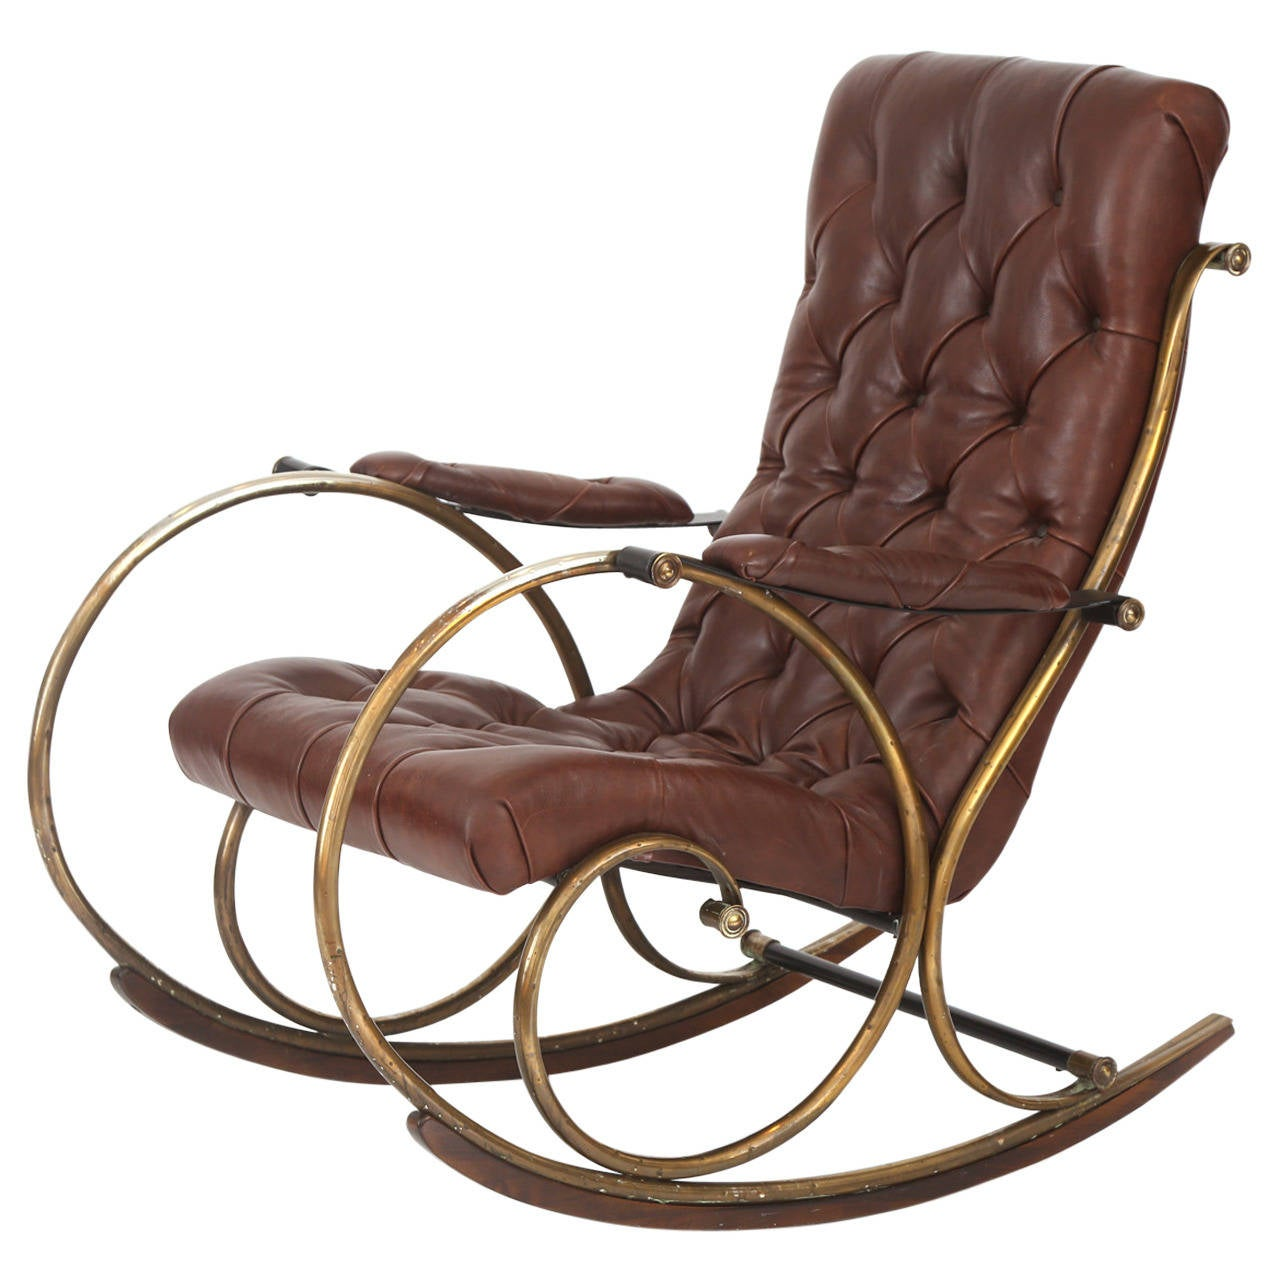 Merveilleux Leather Brass And Wood Rocking Chair By Woodard For Sale